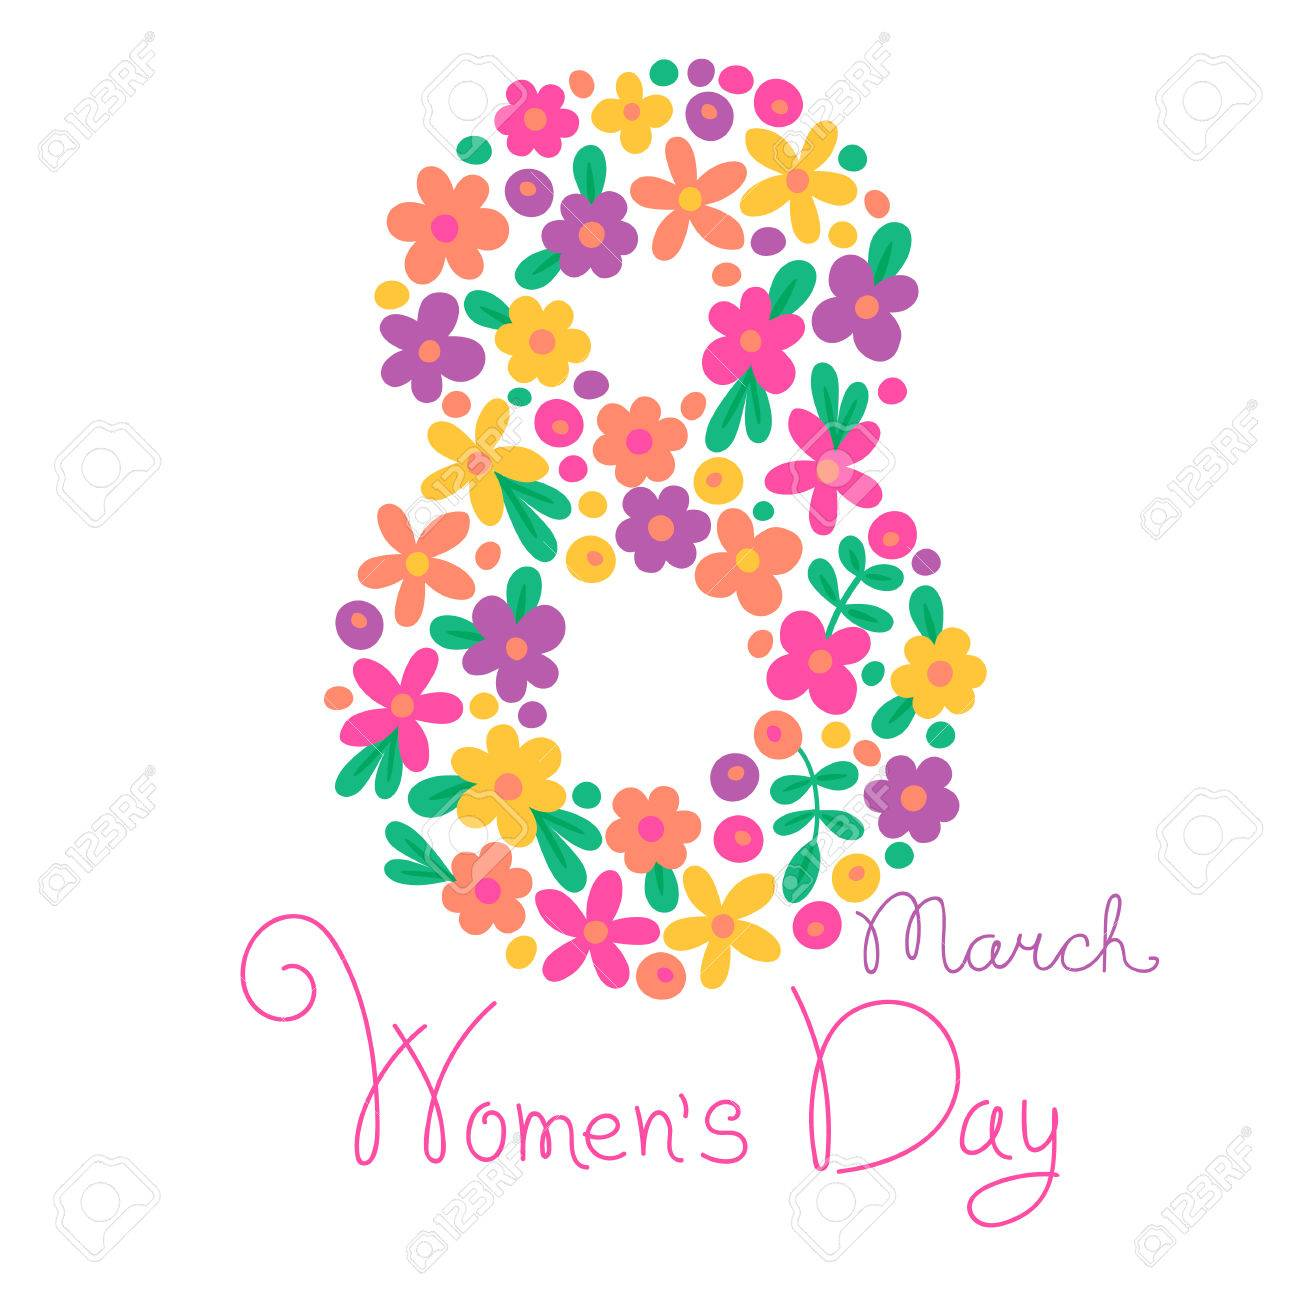 Card Womens Day on March 8. Vector illustration. - 36371306